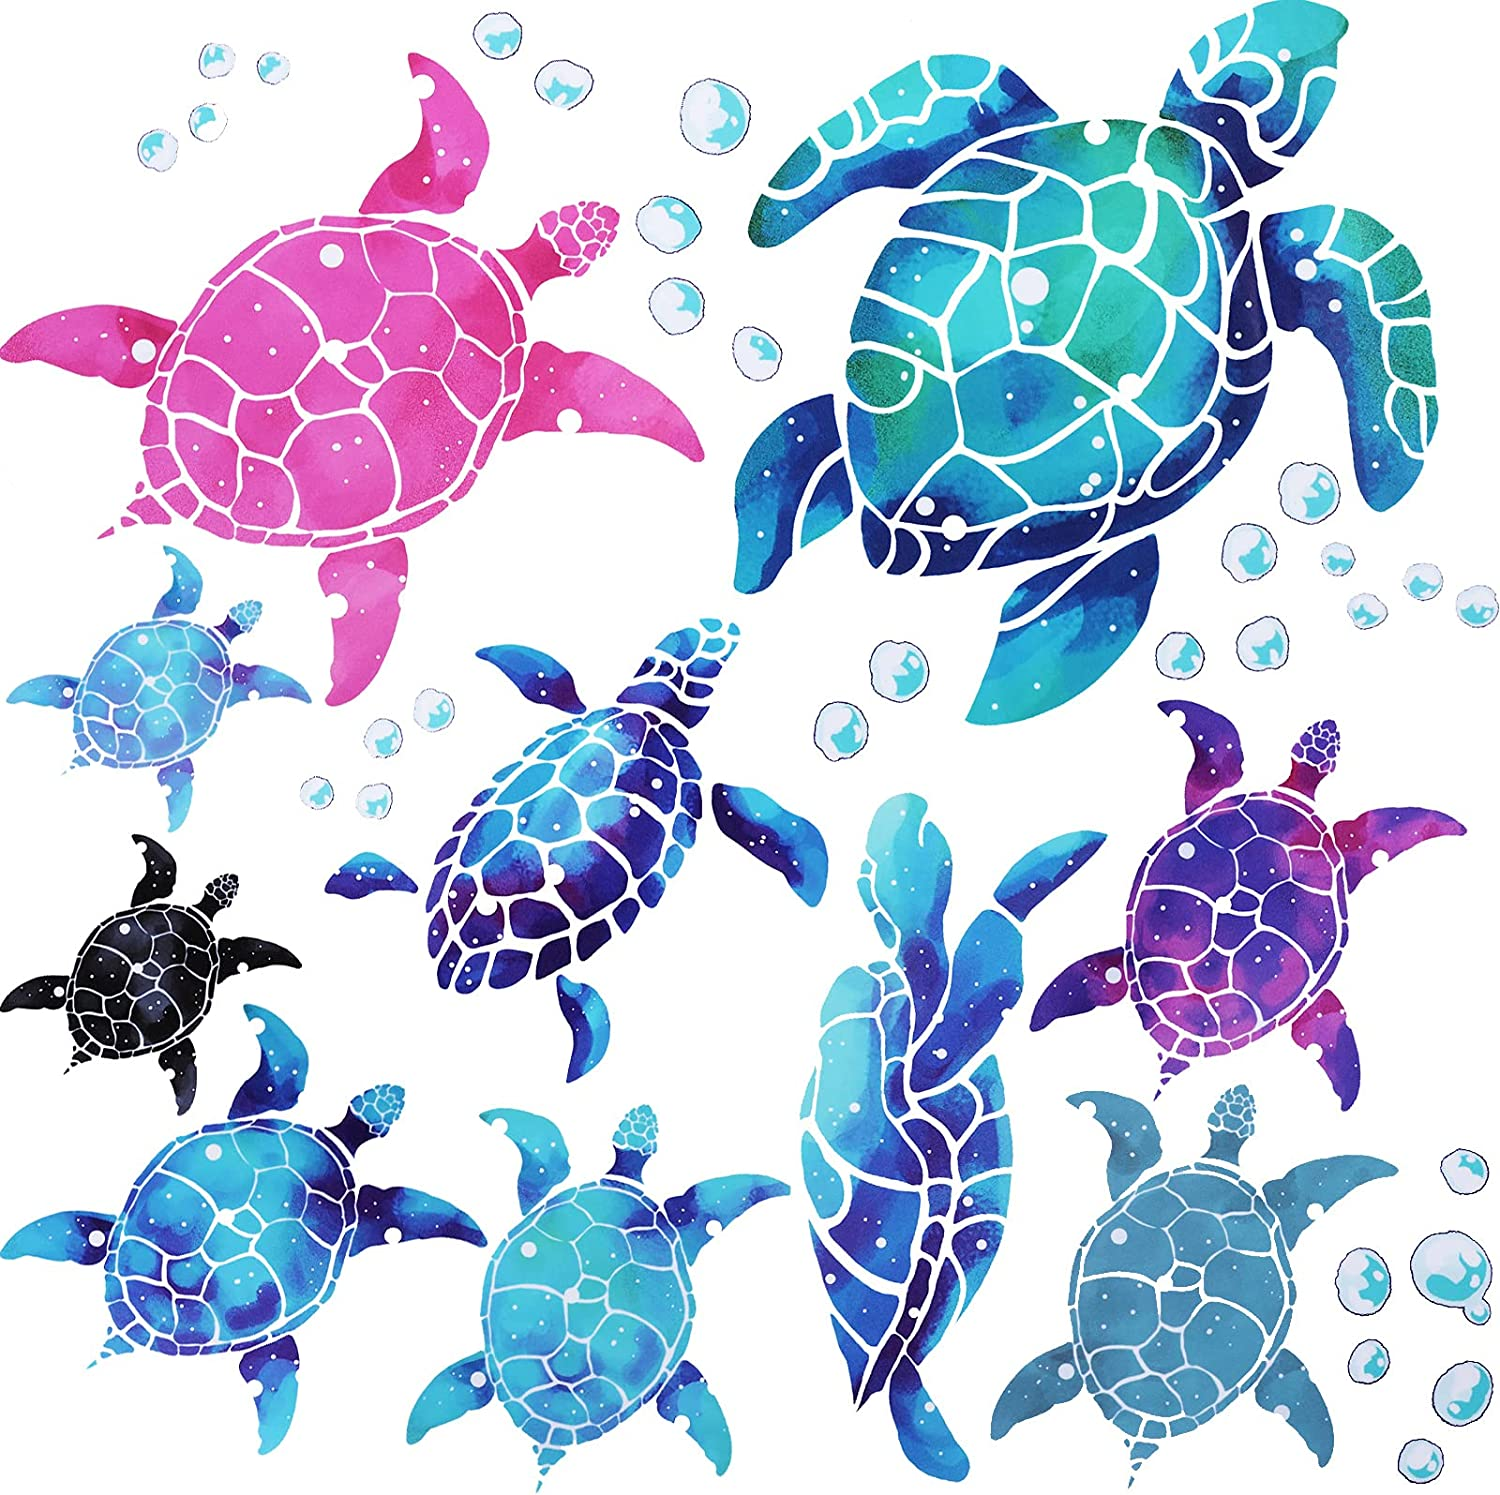 20 Pieces Sea Turtle Wall Decals Removable Turtle Wall Stickers Undersea Bubble Turtle Wall Decor Ocean Themed Bathroom Decor PVC Wall Decoration for Kids Room Living Room Bathroom Home Toilet